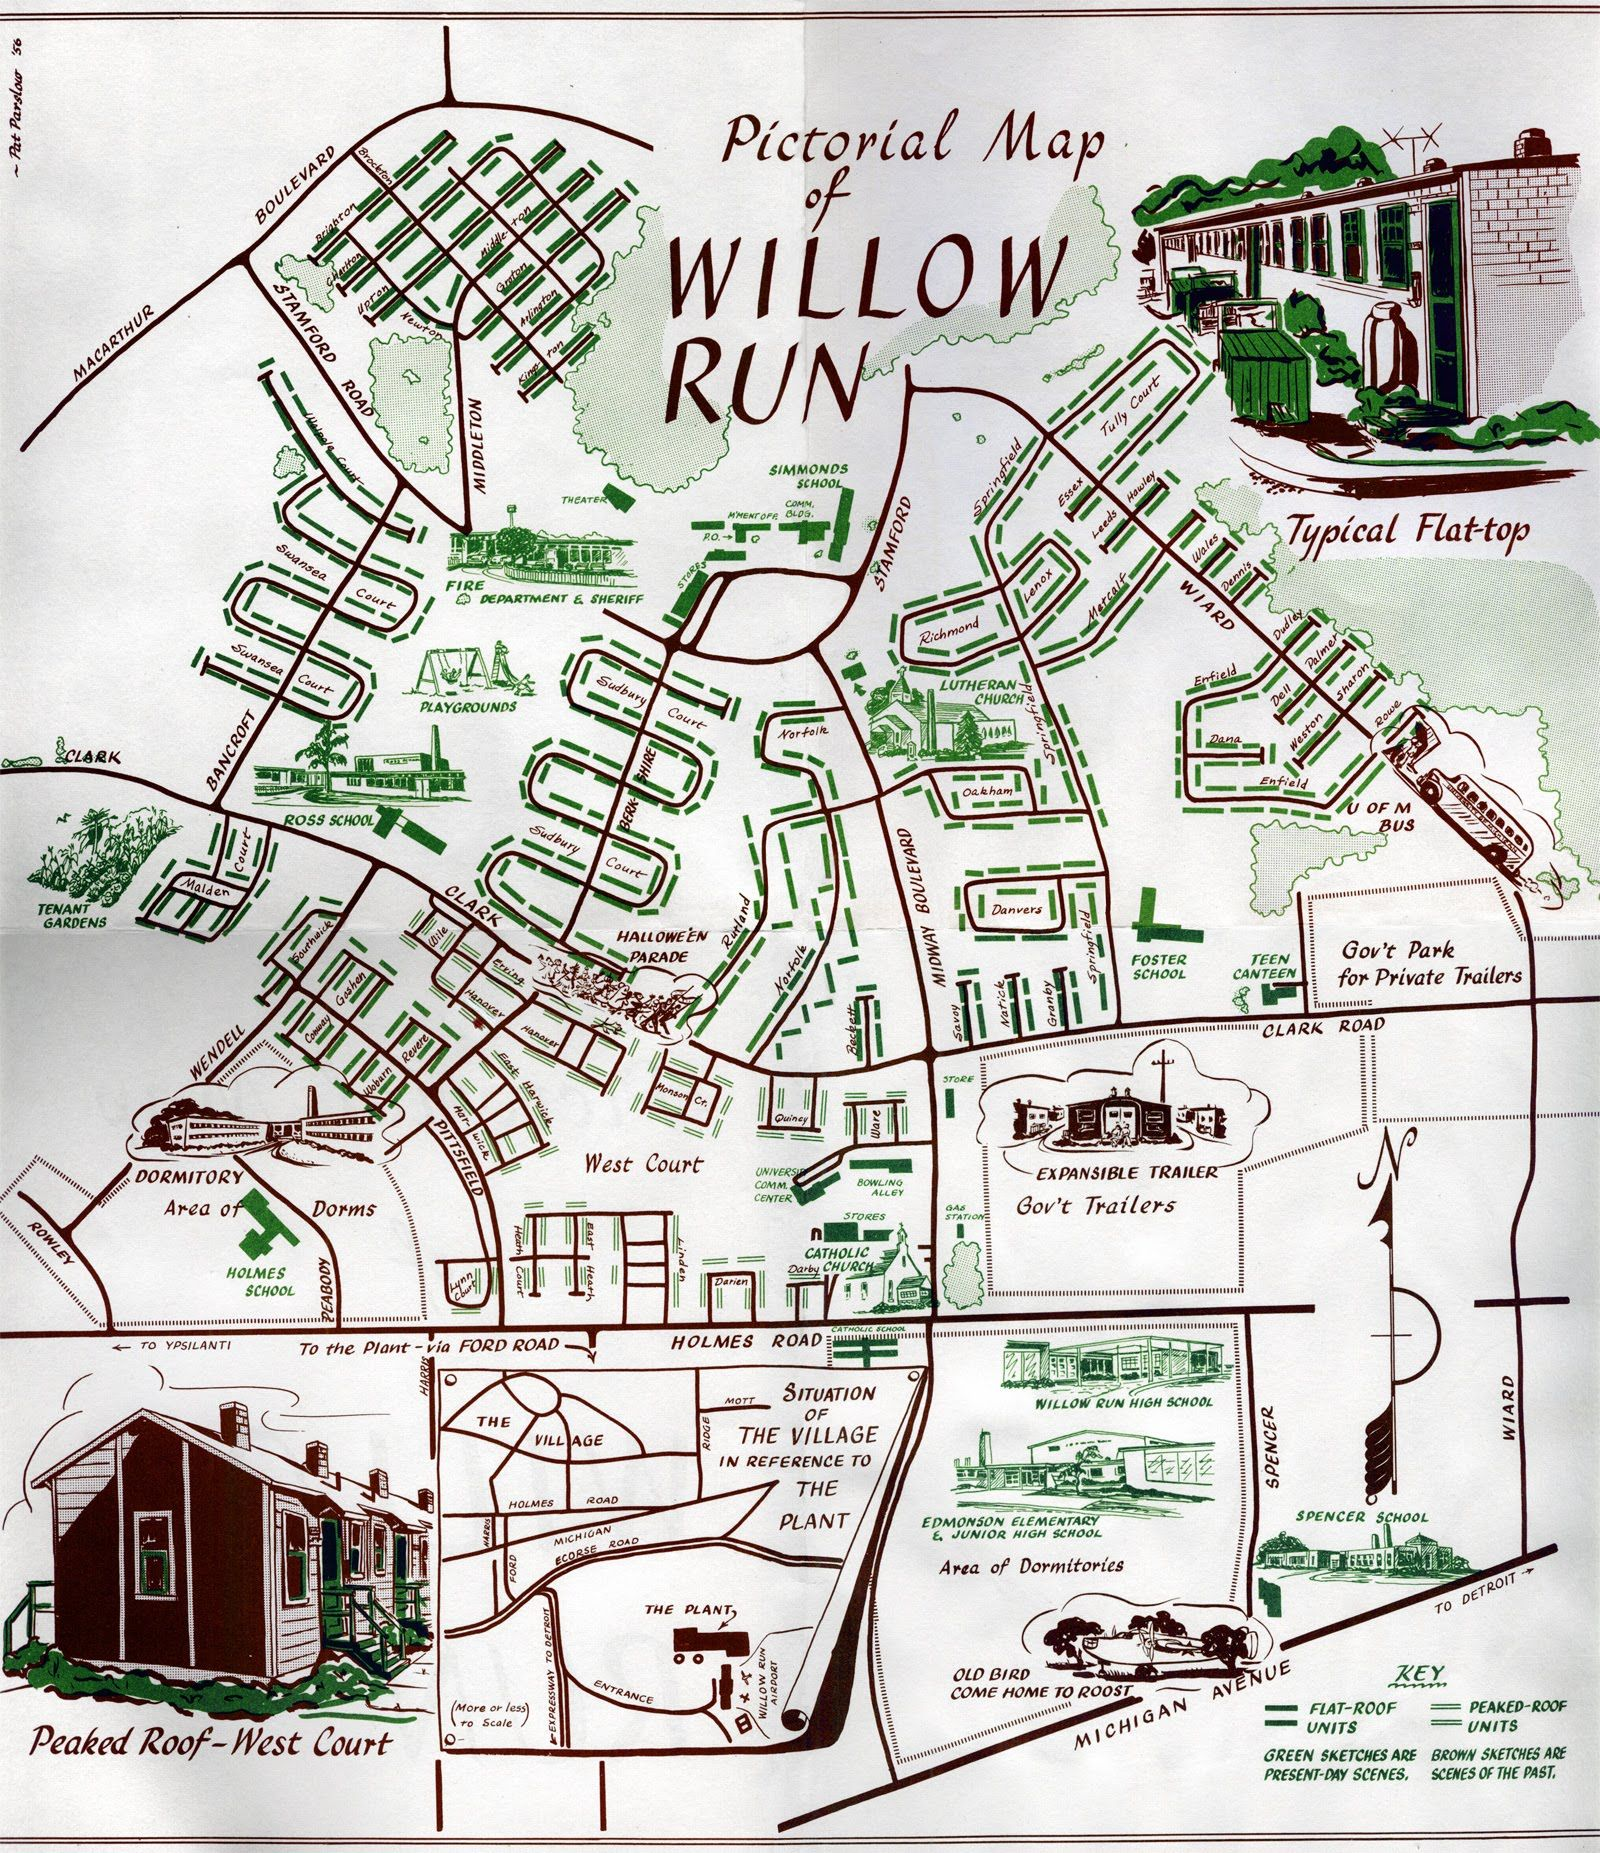 1956 willow run village complex map | history & nostalgia ... on map of detroit freeways, international airport, map of detroit suburbs, map of atlanta neighborhoods, map of detroit casinos, map of belle isle detroit, map of detroit attractions, map of baton rouge streets, map of terminals at dtw, map of detroit civic center, map of atlanta zip codes, map of detroit michigan, map of detroit highways, map of detroit chicago, map of downtown detroit, map of detroit area, map of detroit expressways, map of detroit people mover, map of hotels in chattanooga, map of detroit streets,